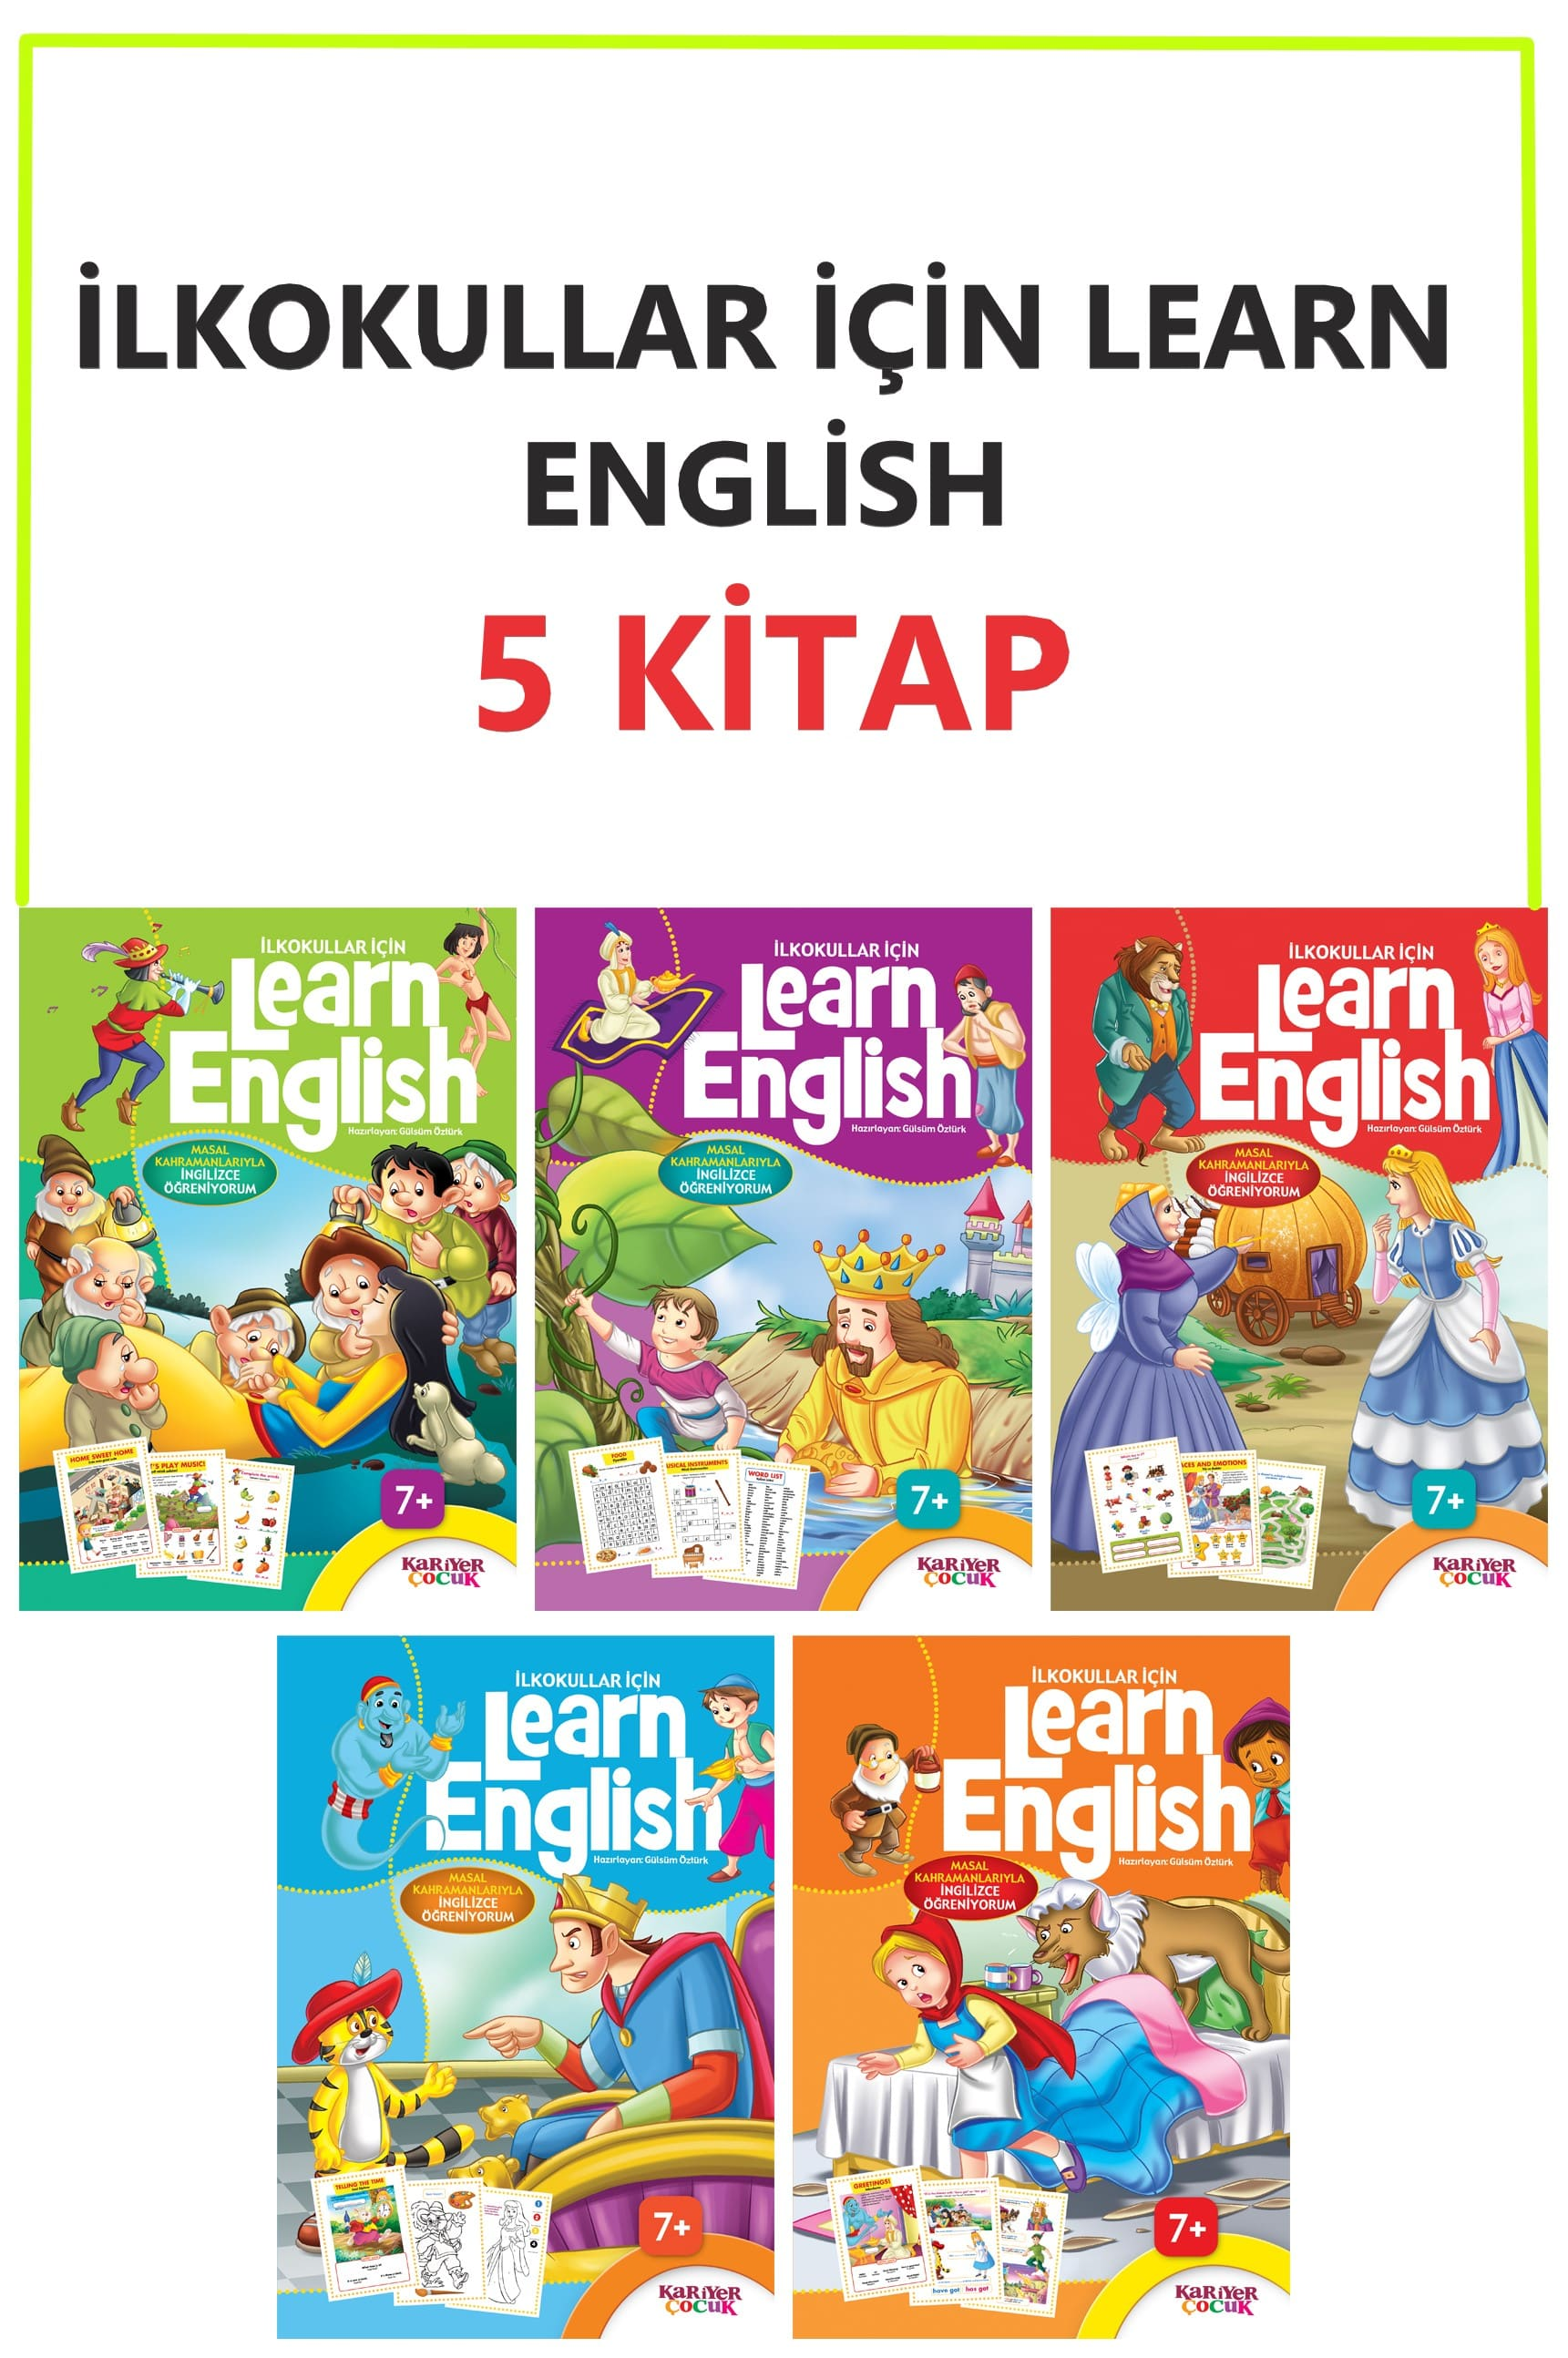 İLKOKULLAR İÇİN LEARN ENGLİSH 5 KİTAP SET